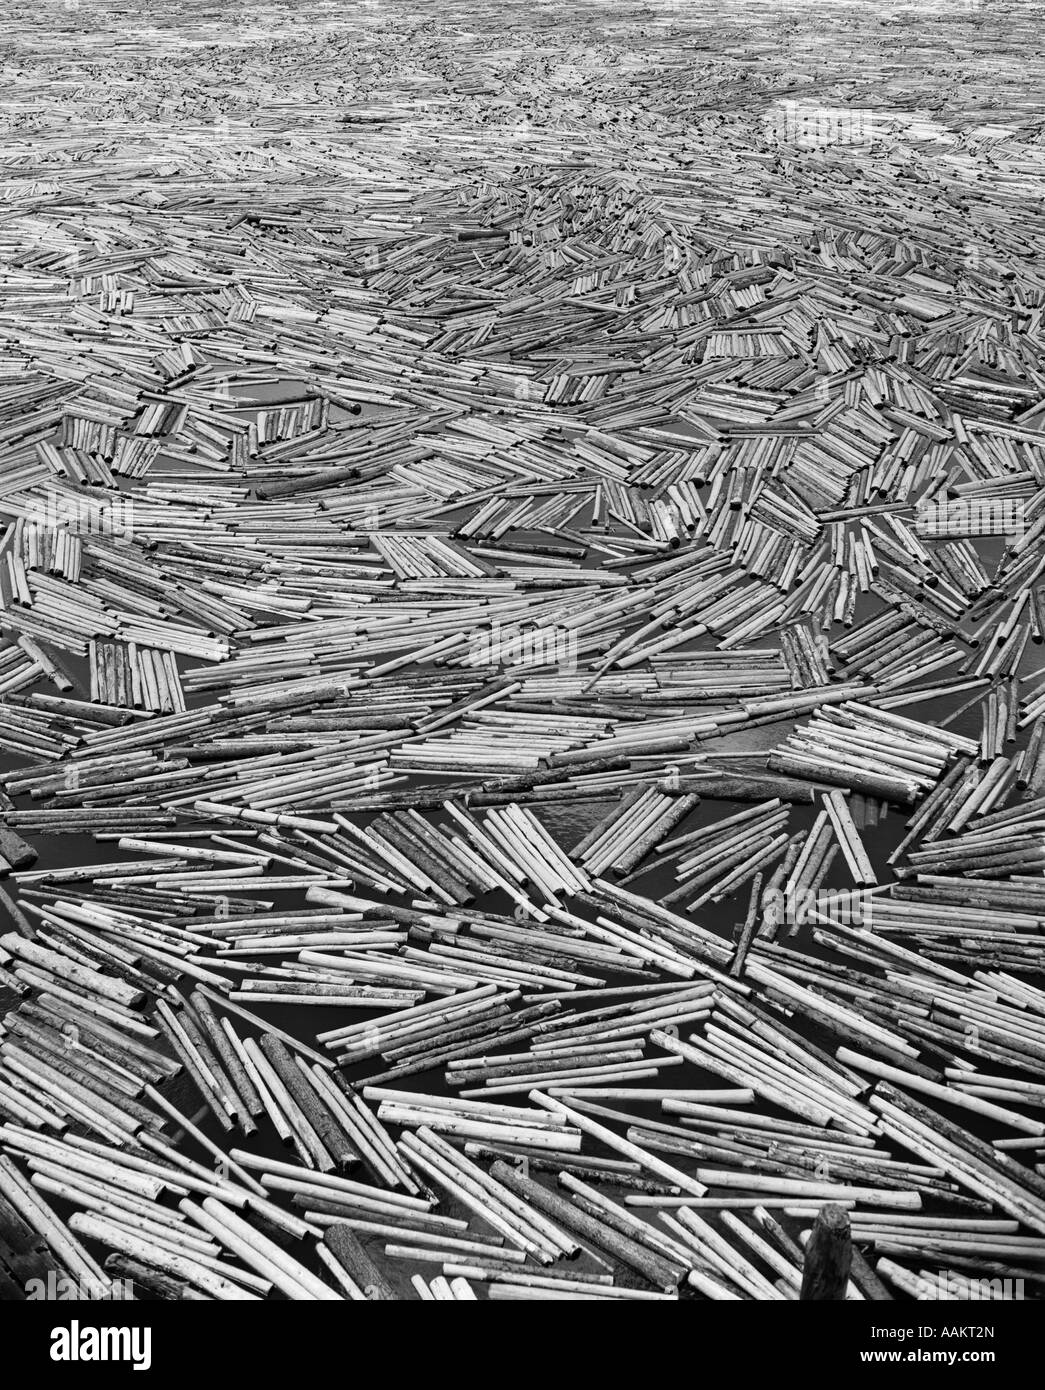 1960s SCENE OF PULP WOOD FLOATING IN LAKE PORT - Stock Image